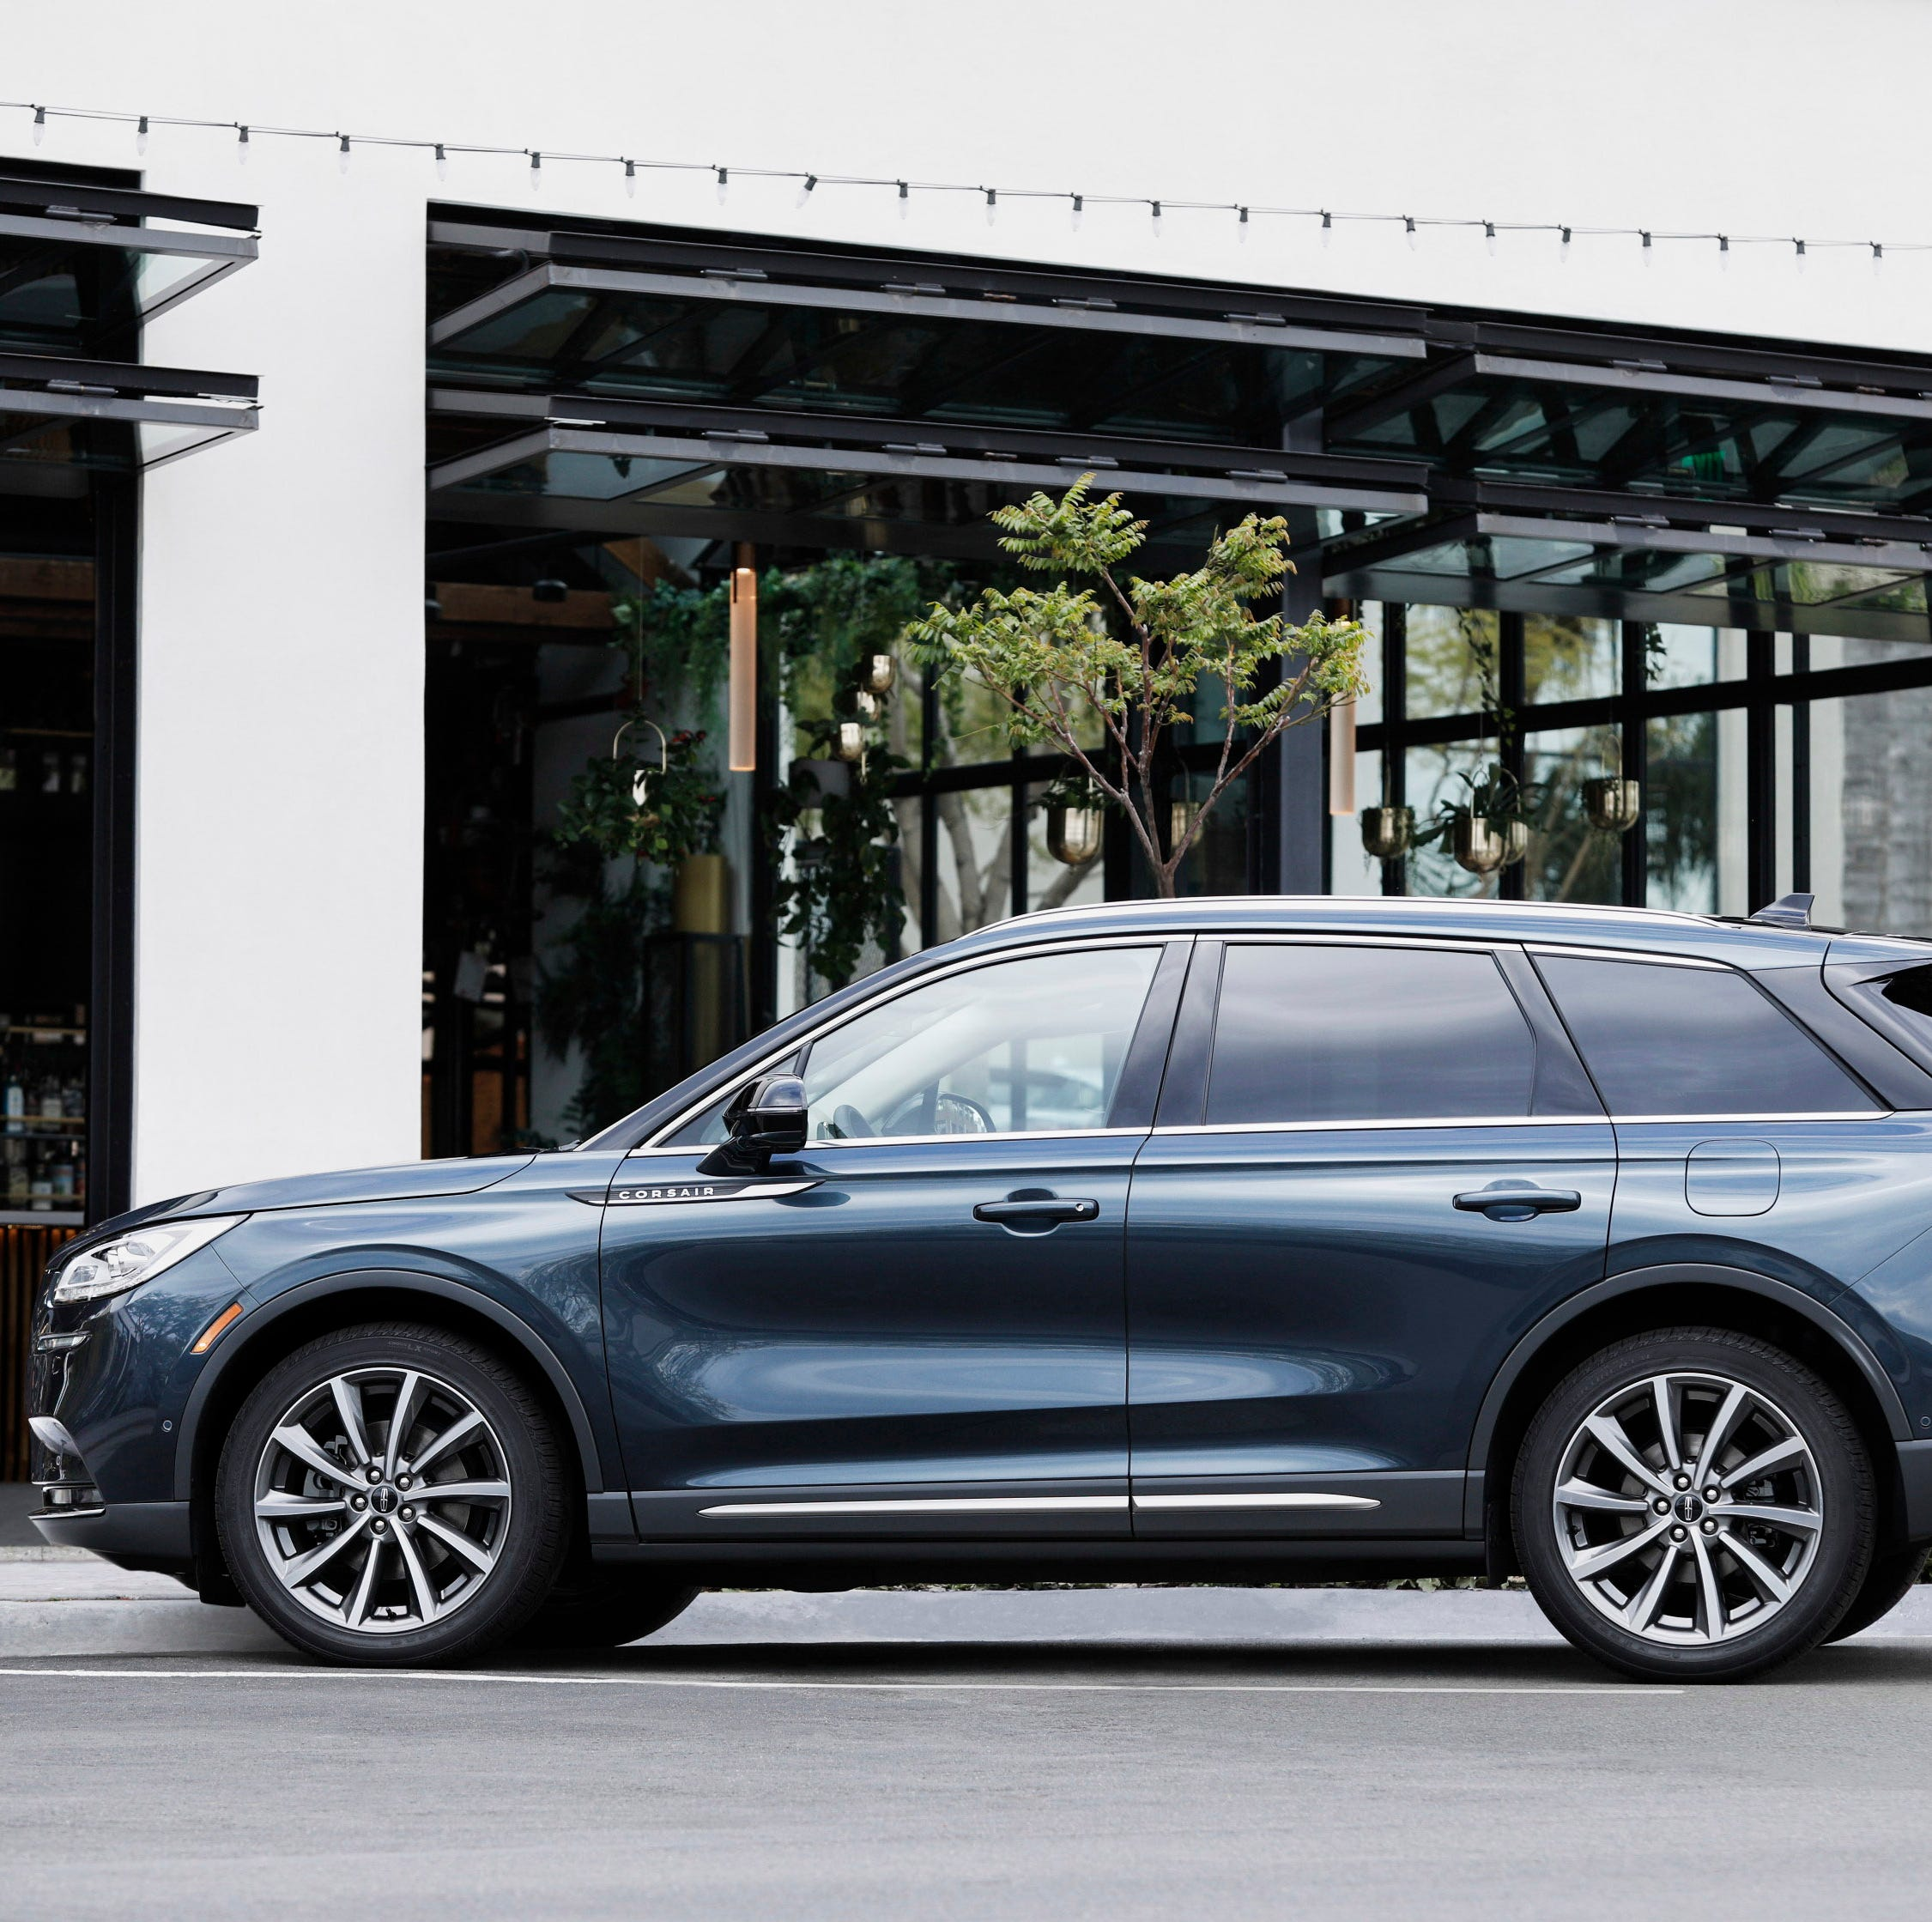 2020 Lincoln Corsair luxury SUV comes at key time for automaker